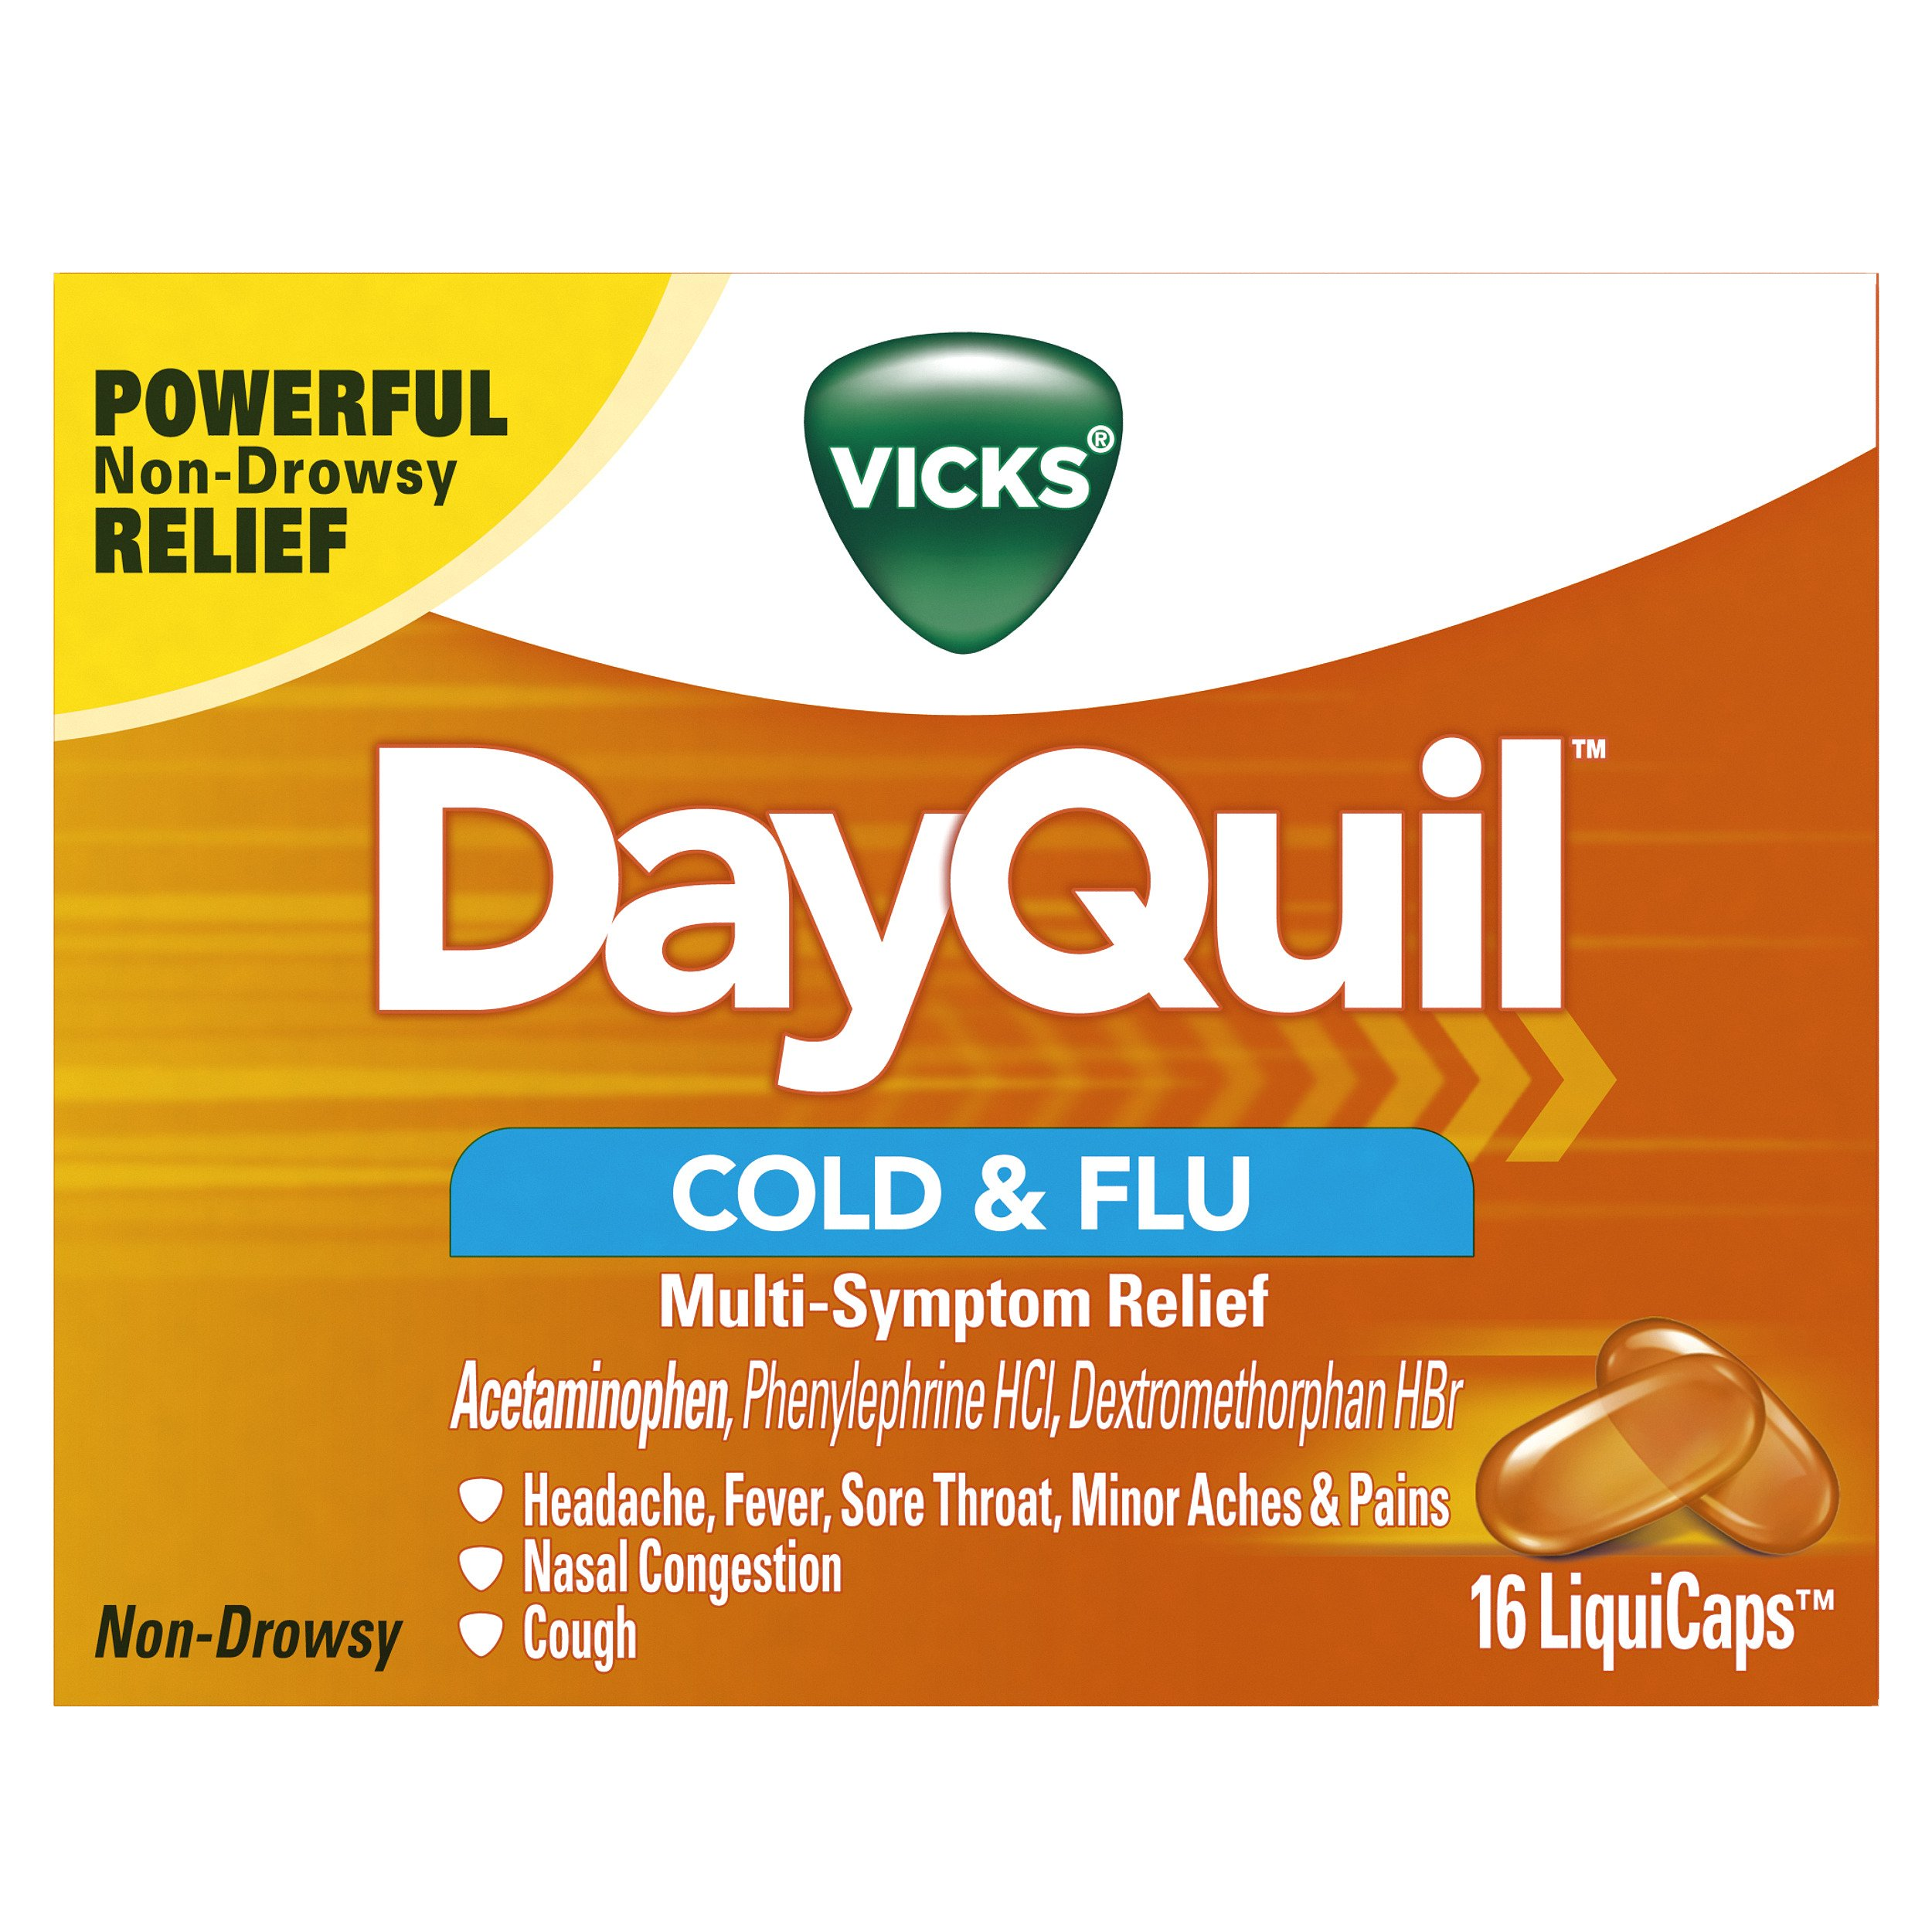 Vicks Dayquil Cold & Flu Multi-Symptom Relief 16 Liquicaps, 16 Count (Pack of 24)